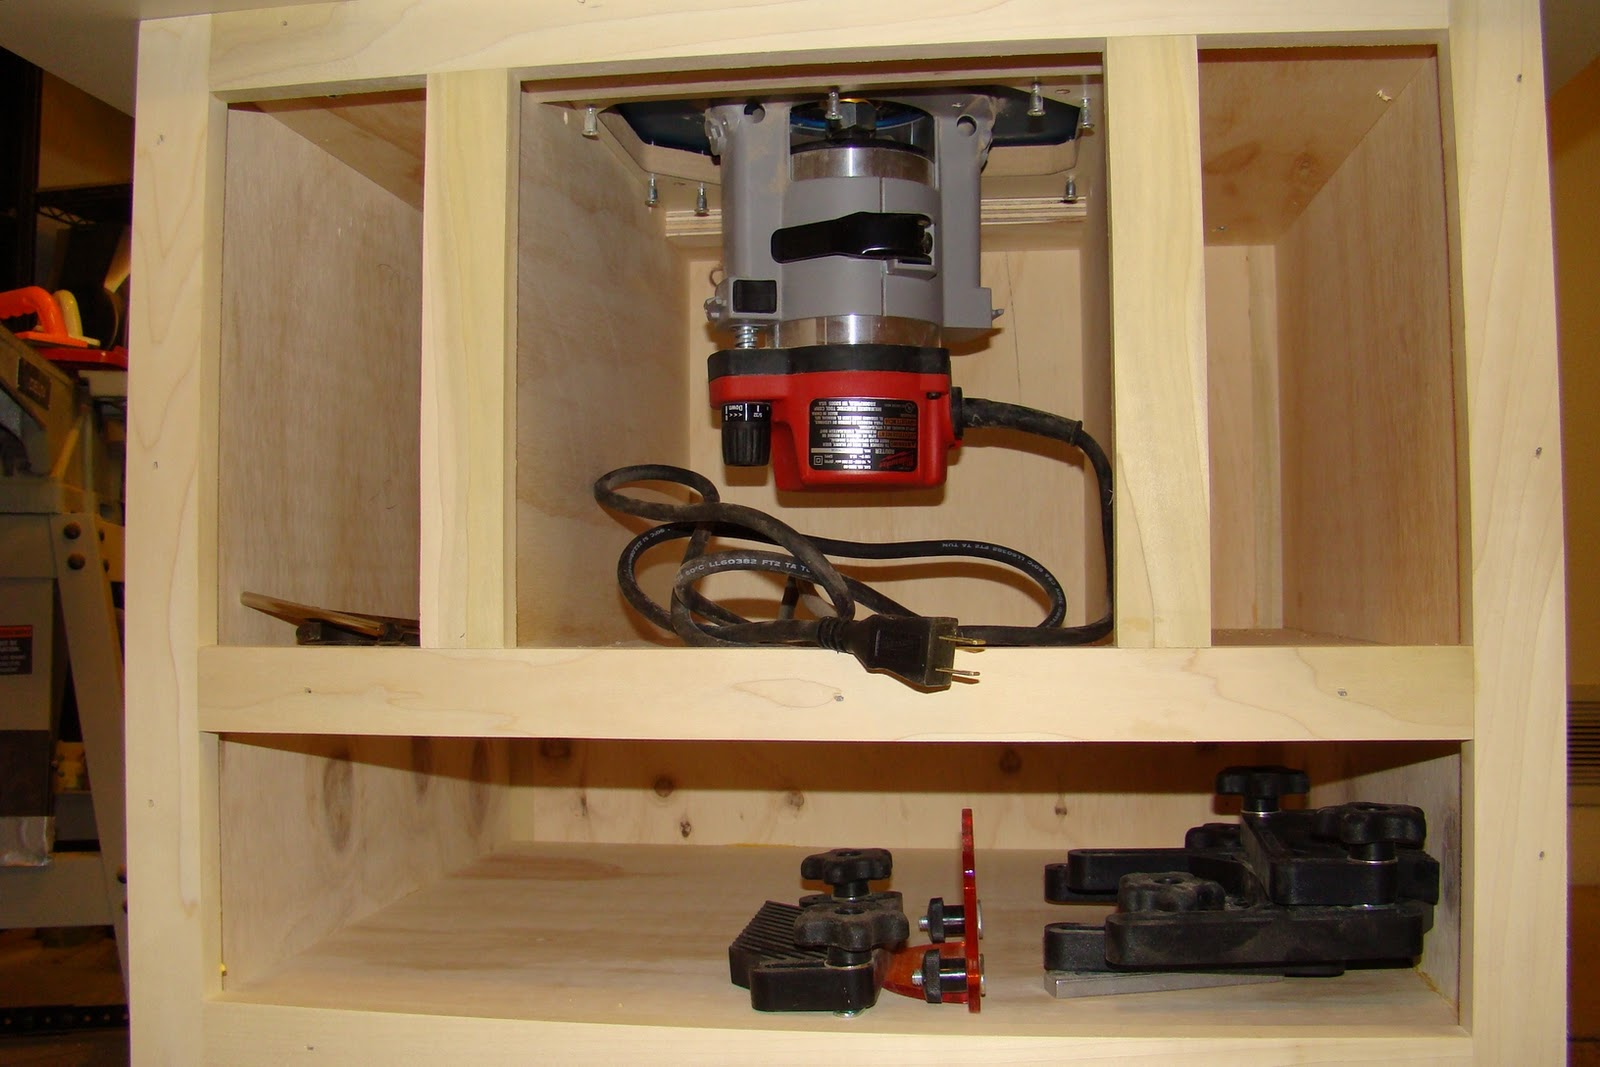 Router Table Projects : Baby Crib Plans - Suggestions For Rookies - The Right Way To Start